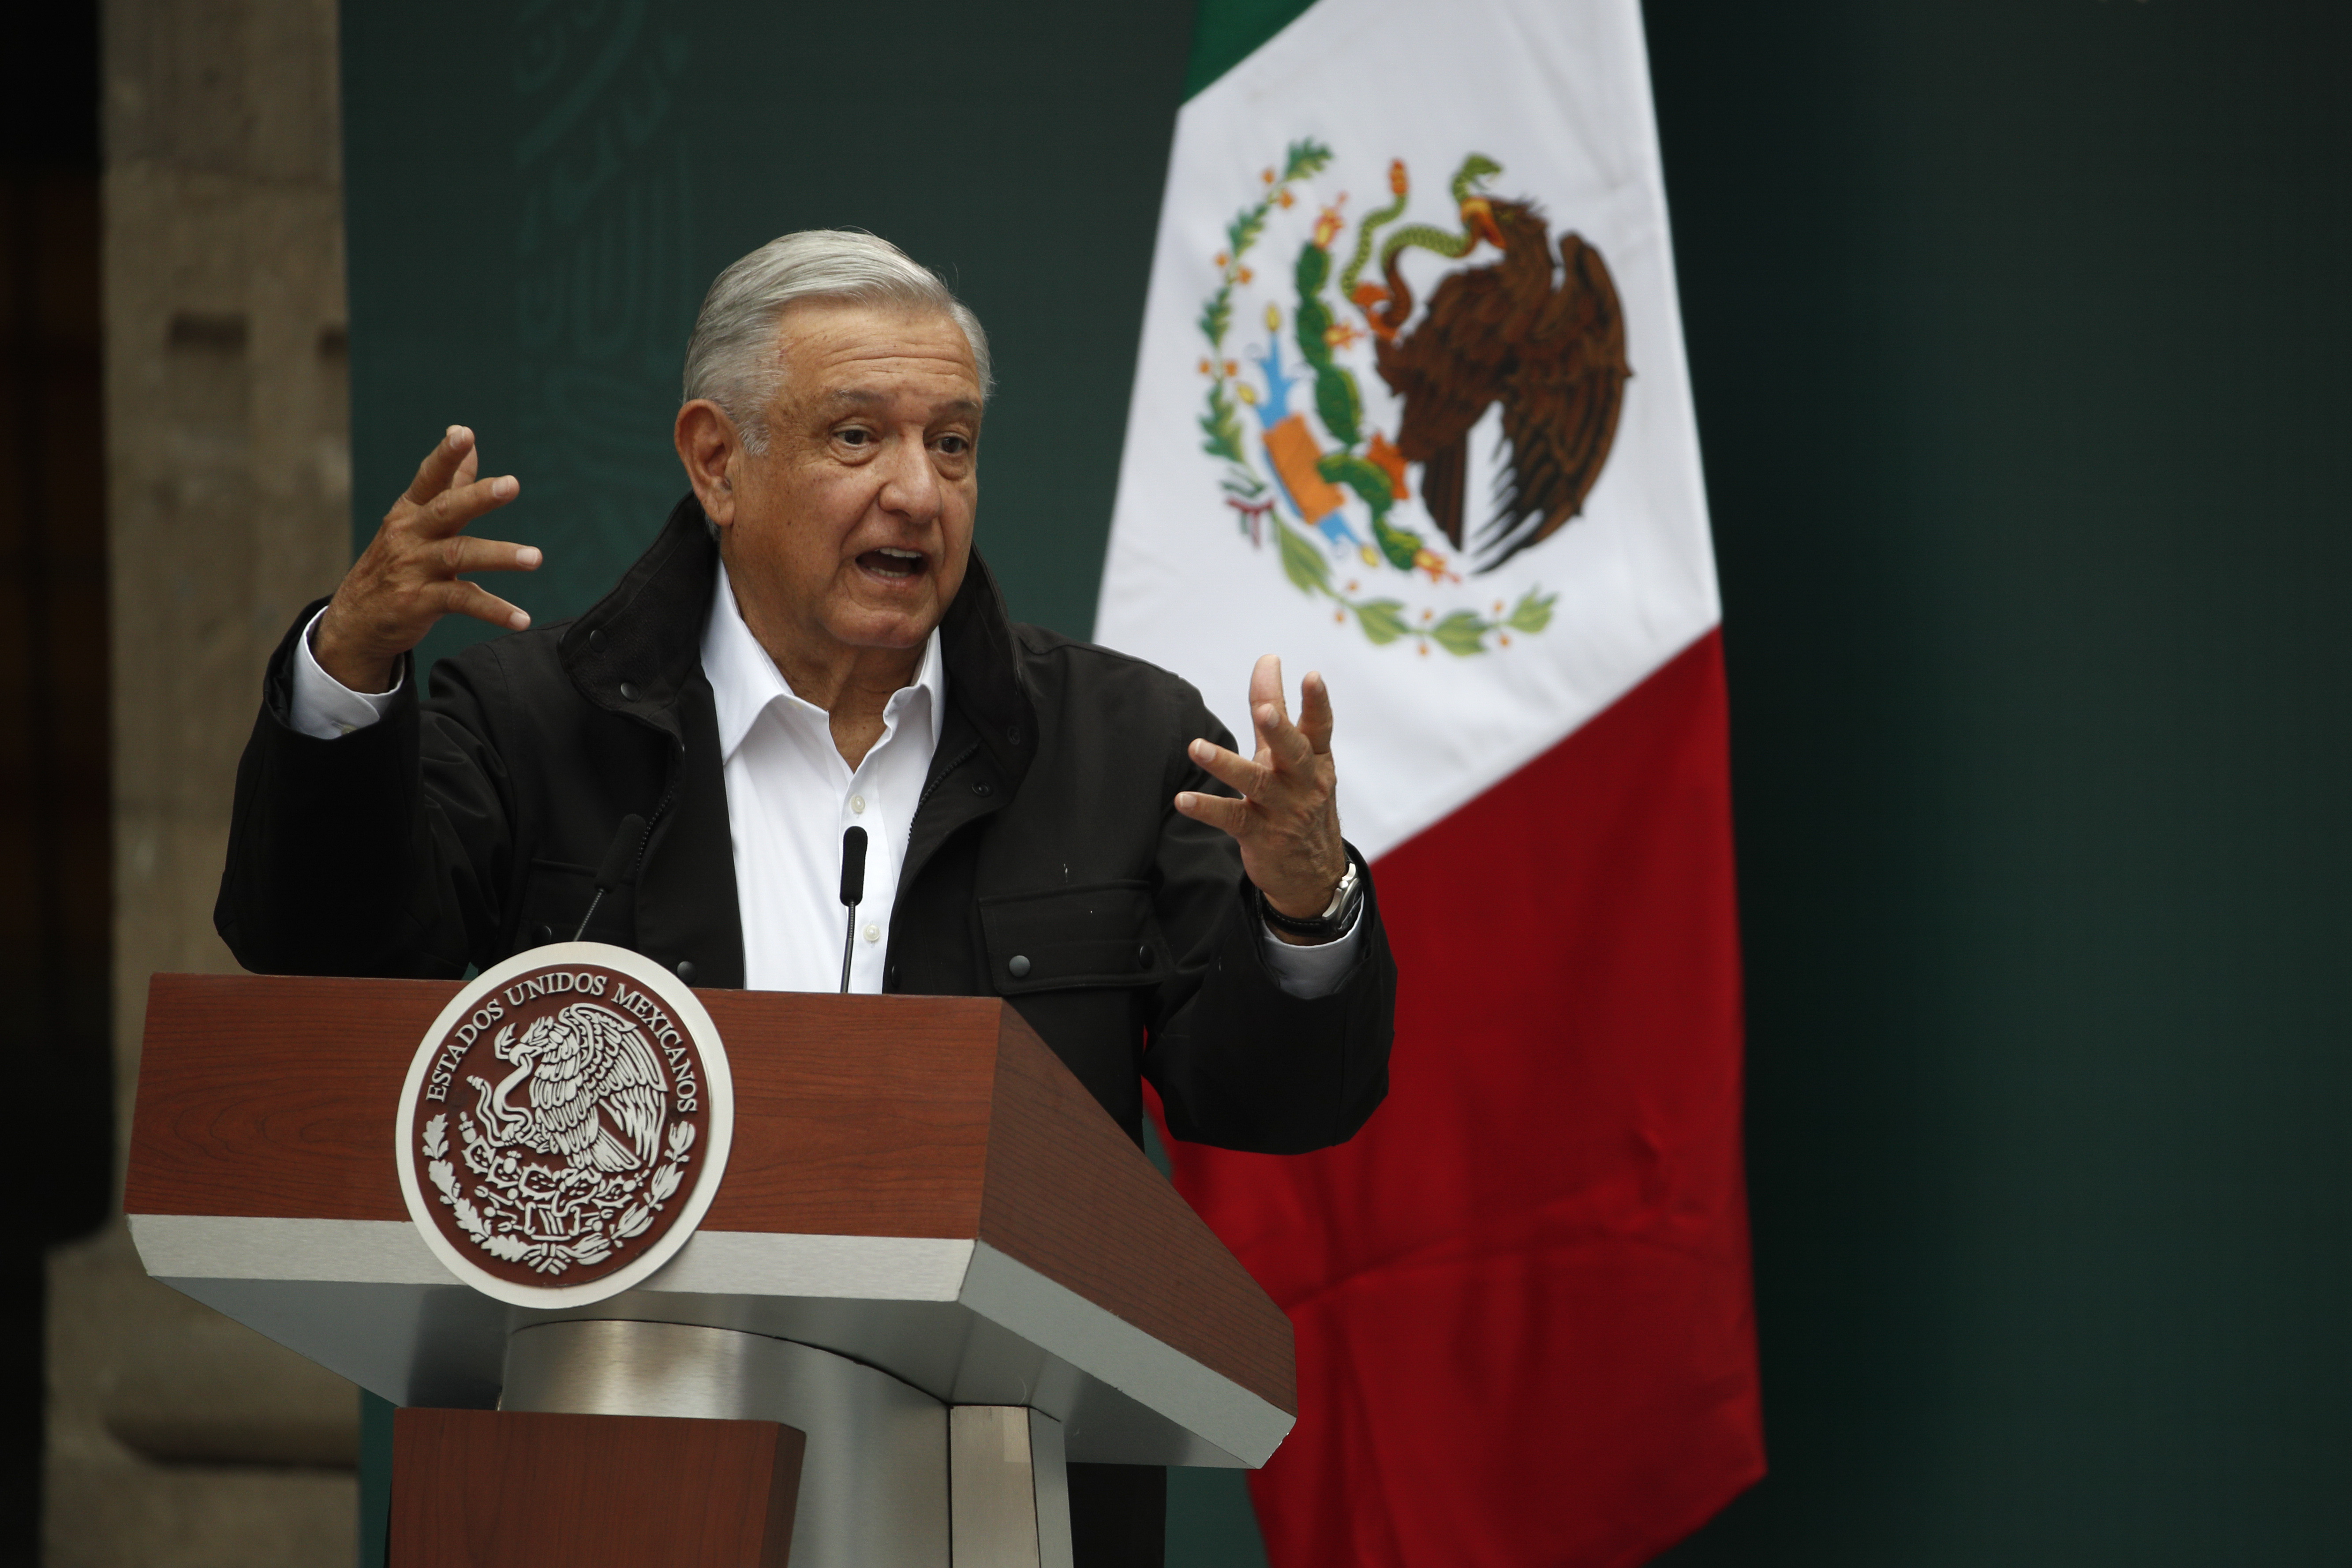 Mexican president asks Pope Francis for conquest apology